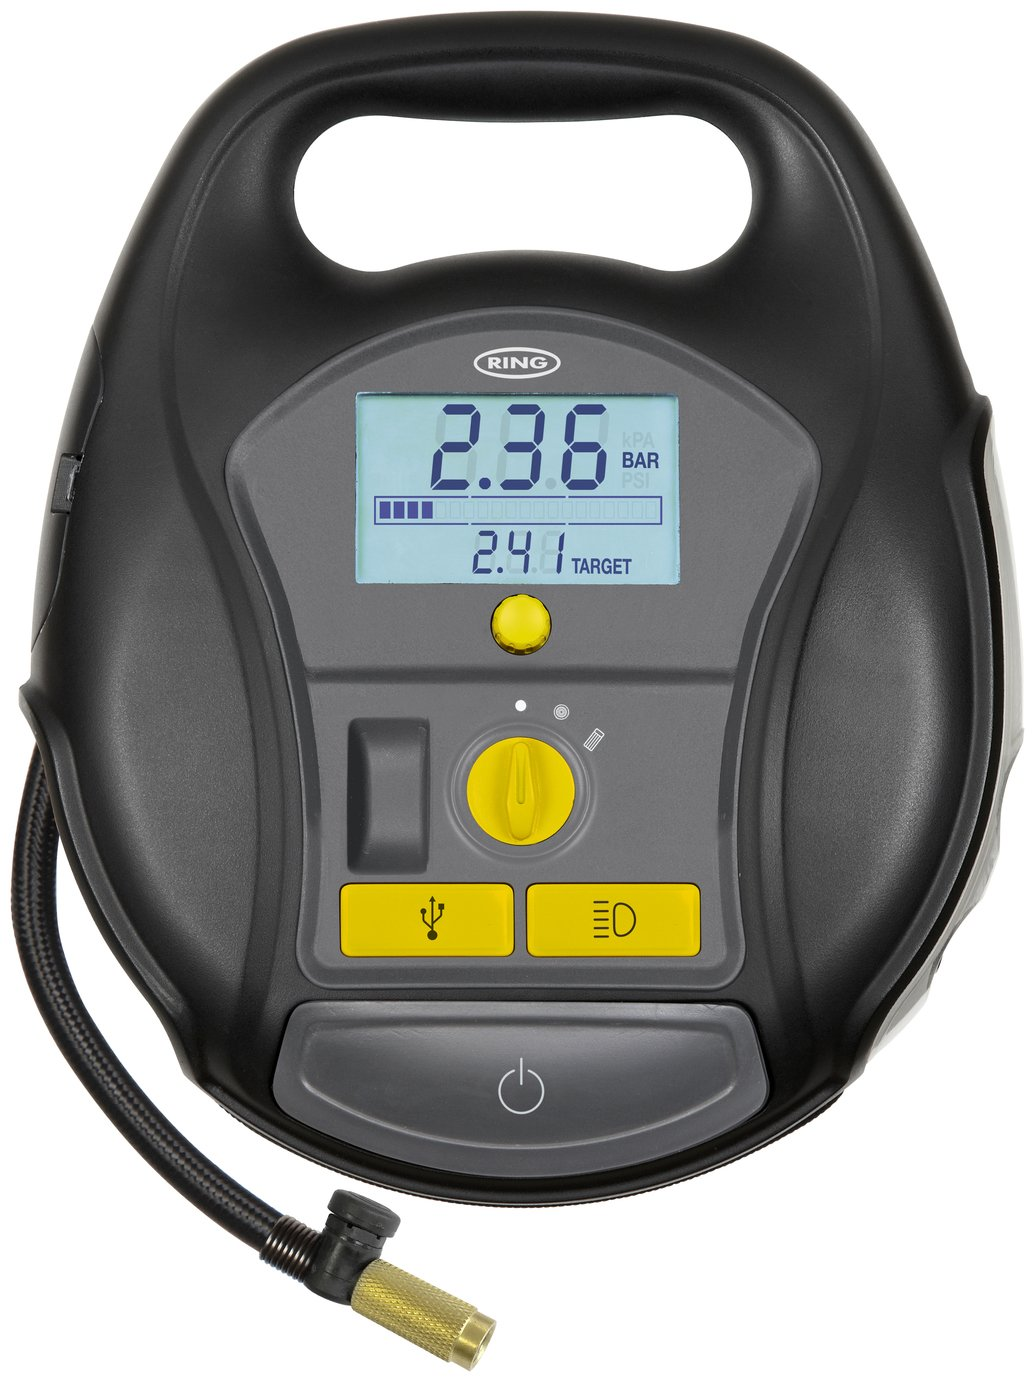 Ring RCT6000 Cordless Digital Tyre Inflator